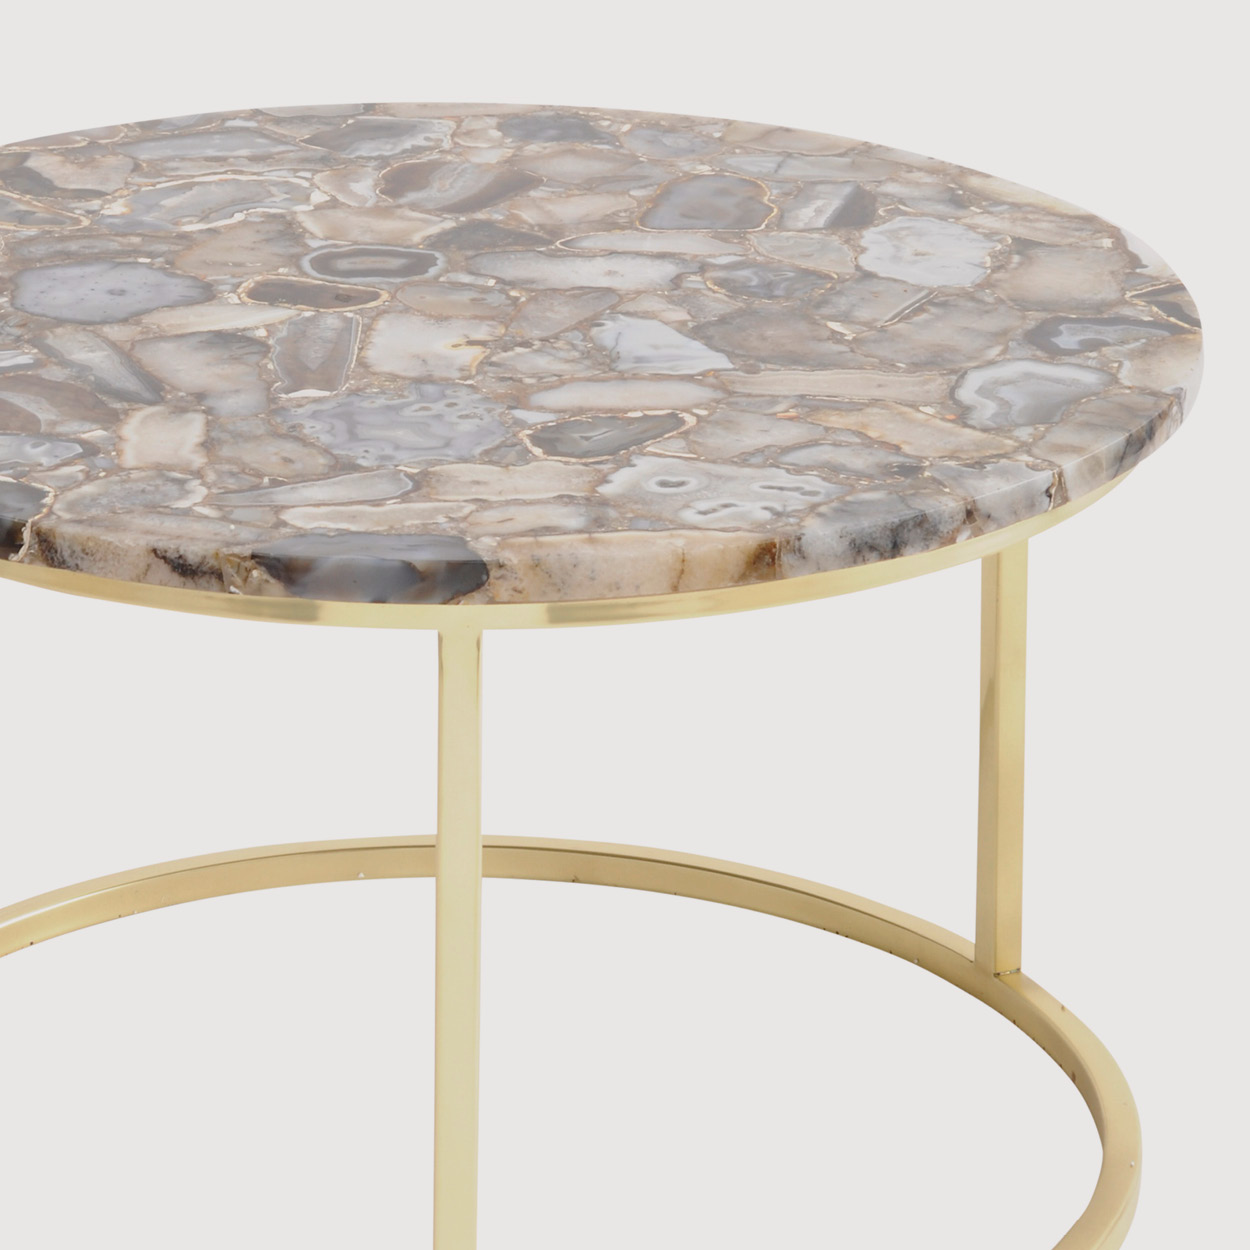 Agate Round Coffee Table – Brass Frame gallery image